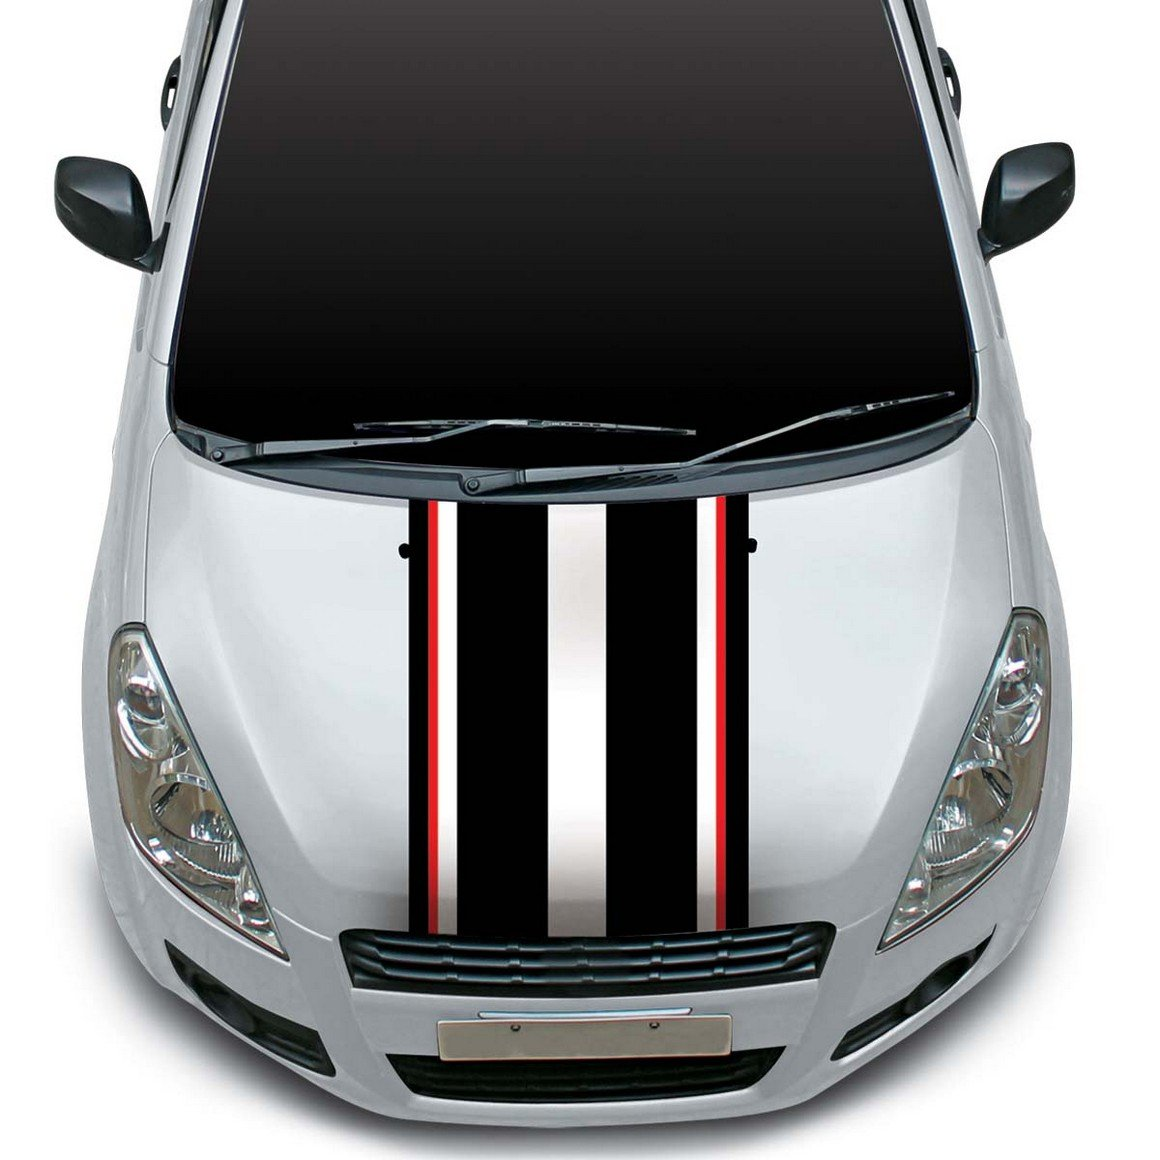 Autographix racing stripes car bonnet wrap graphics small amazon in car motorbike